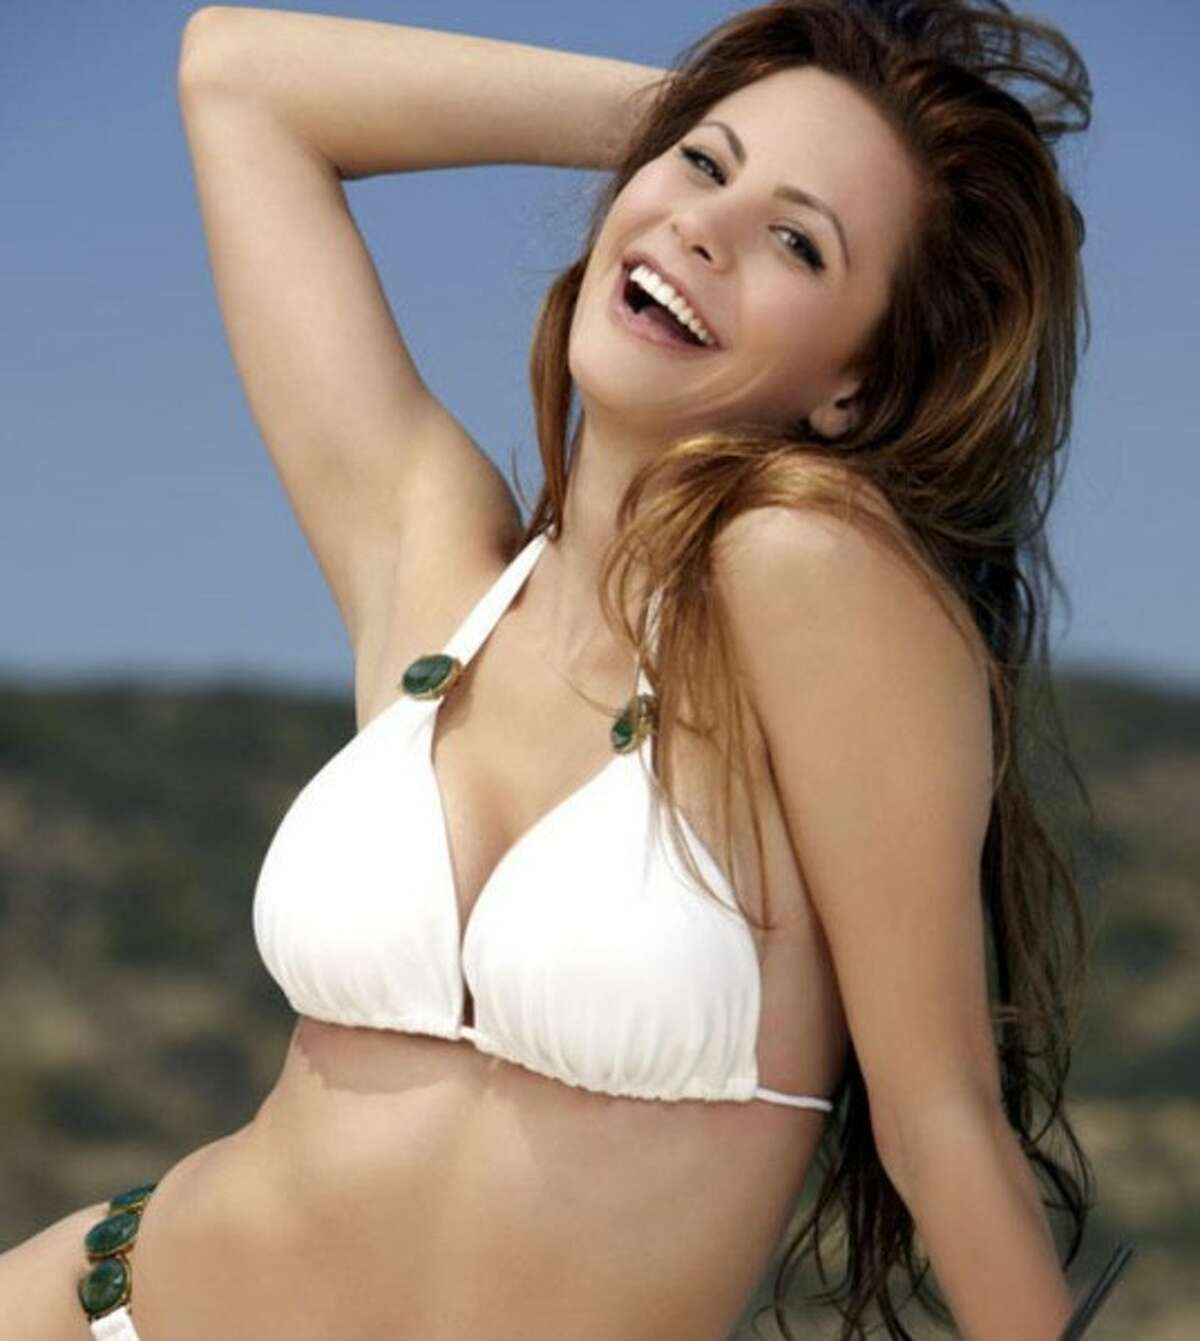 Name: Gia Allemand  Show: The Bachelor Model and actress, Gia Allemand competed on